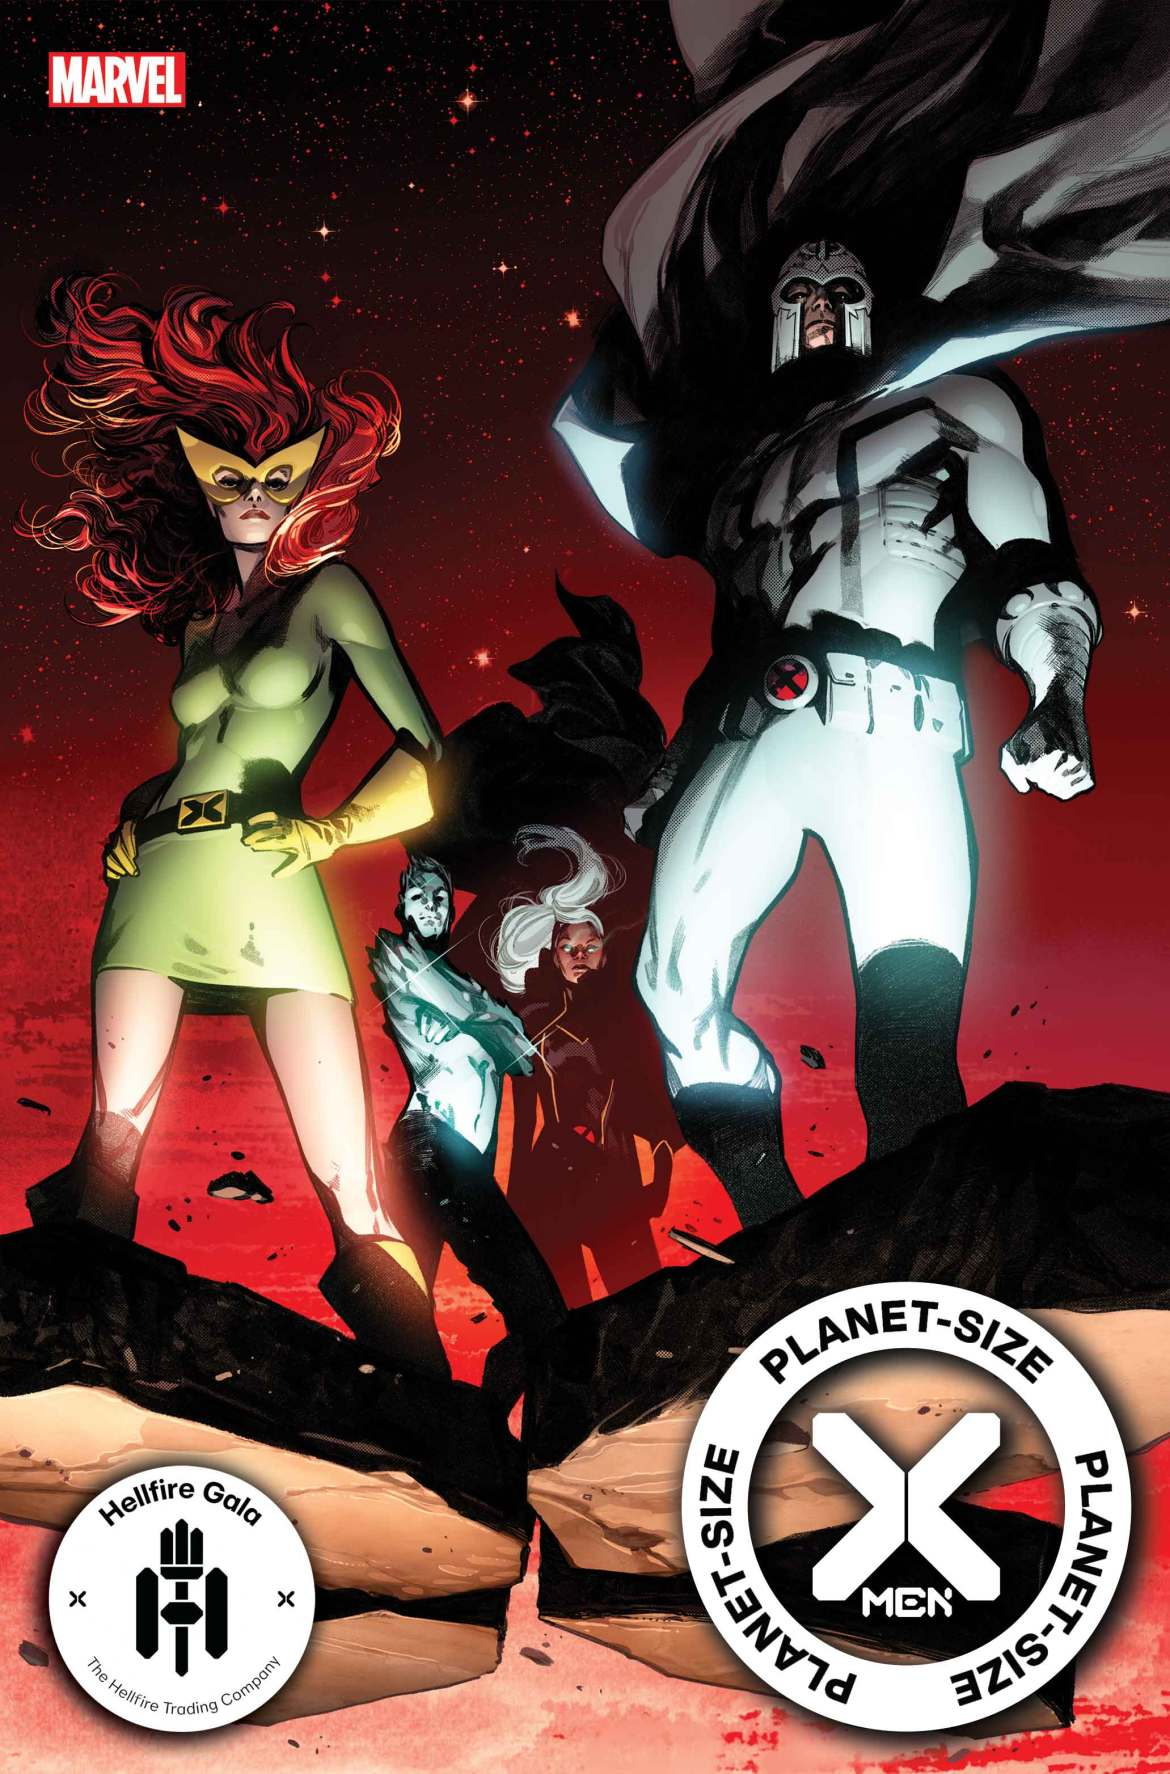 PSXMEN2021001_cov PLANET-SIZE X-MEN #1 to reveal the future of mutantkind